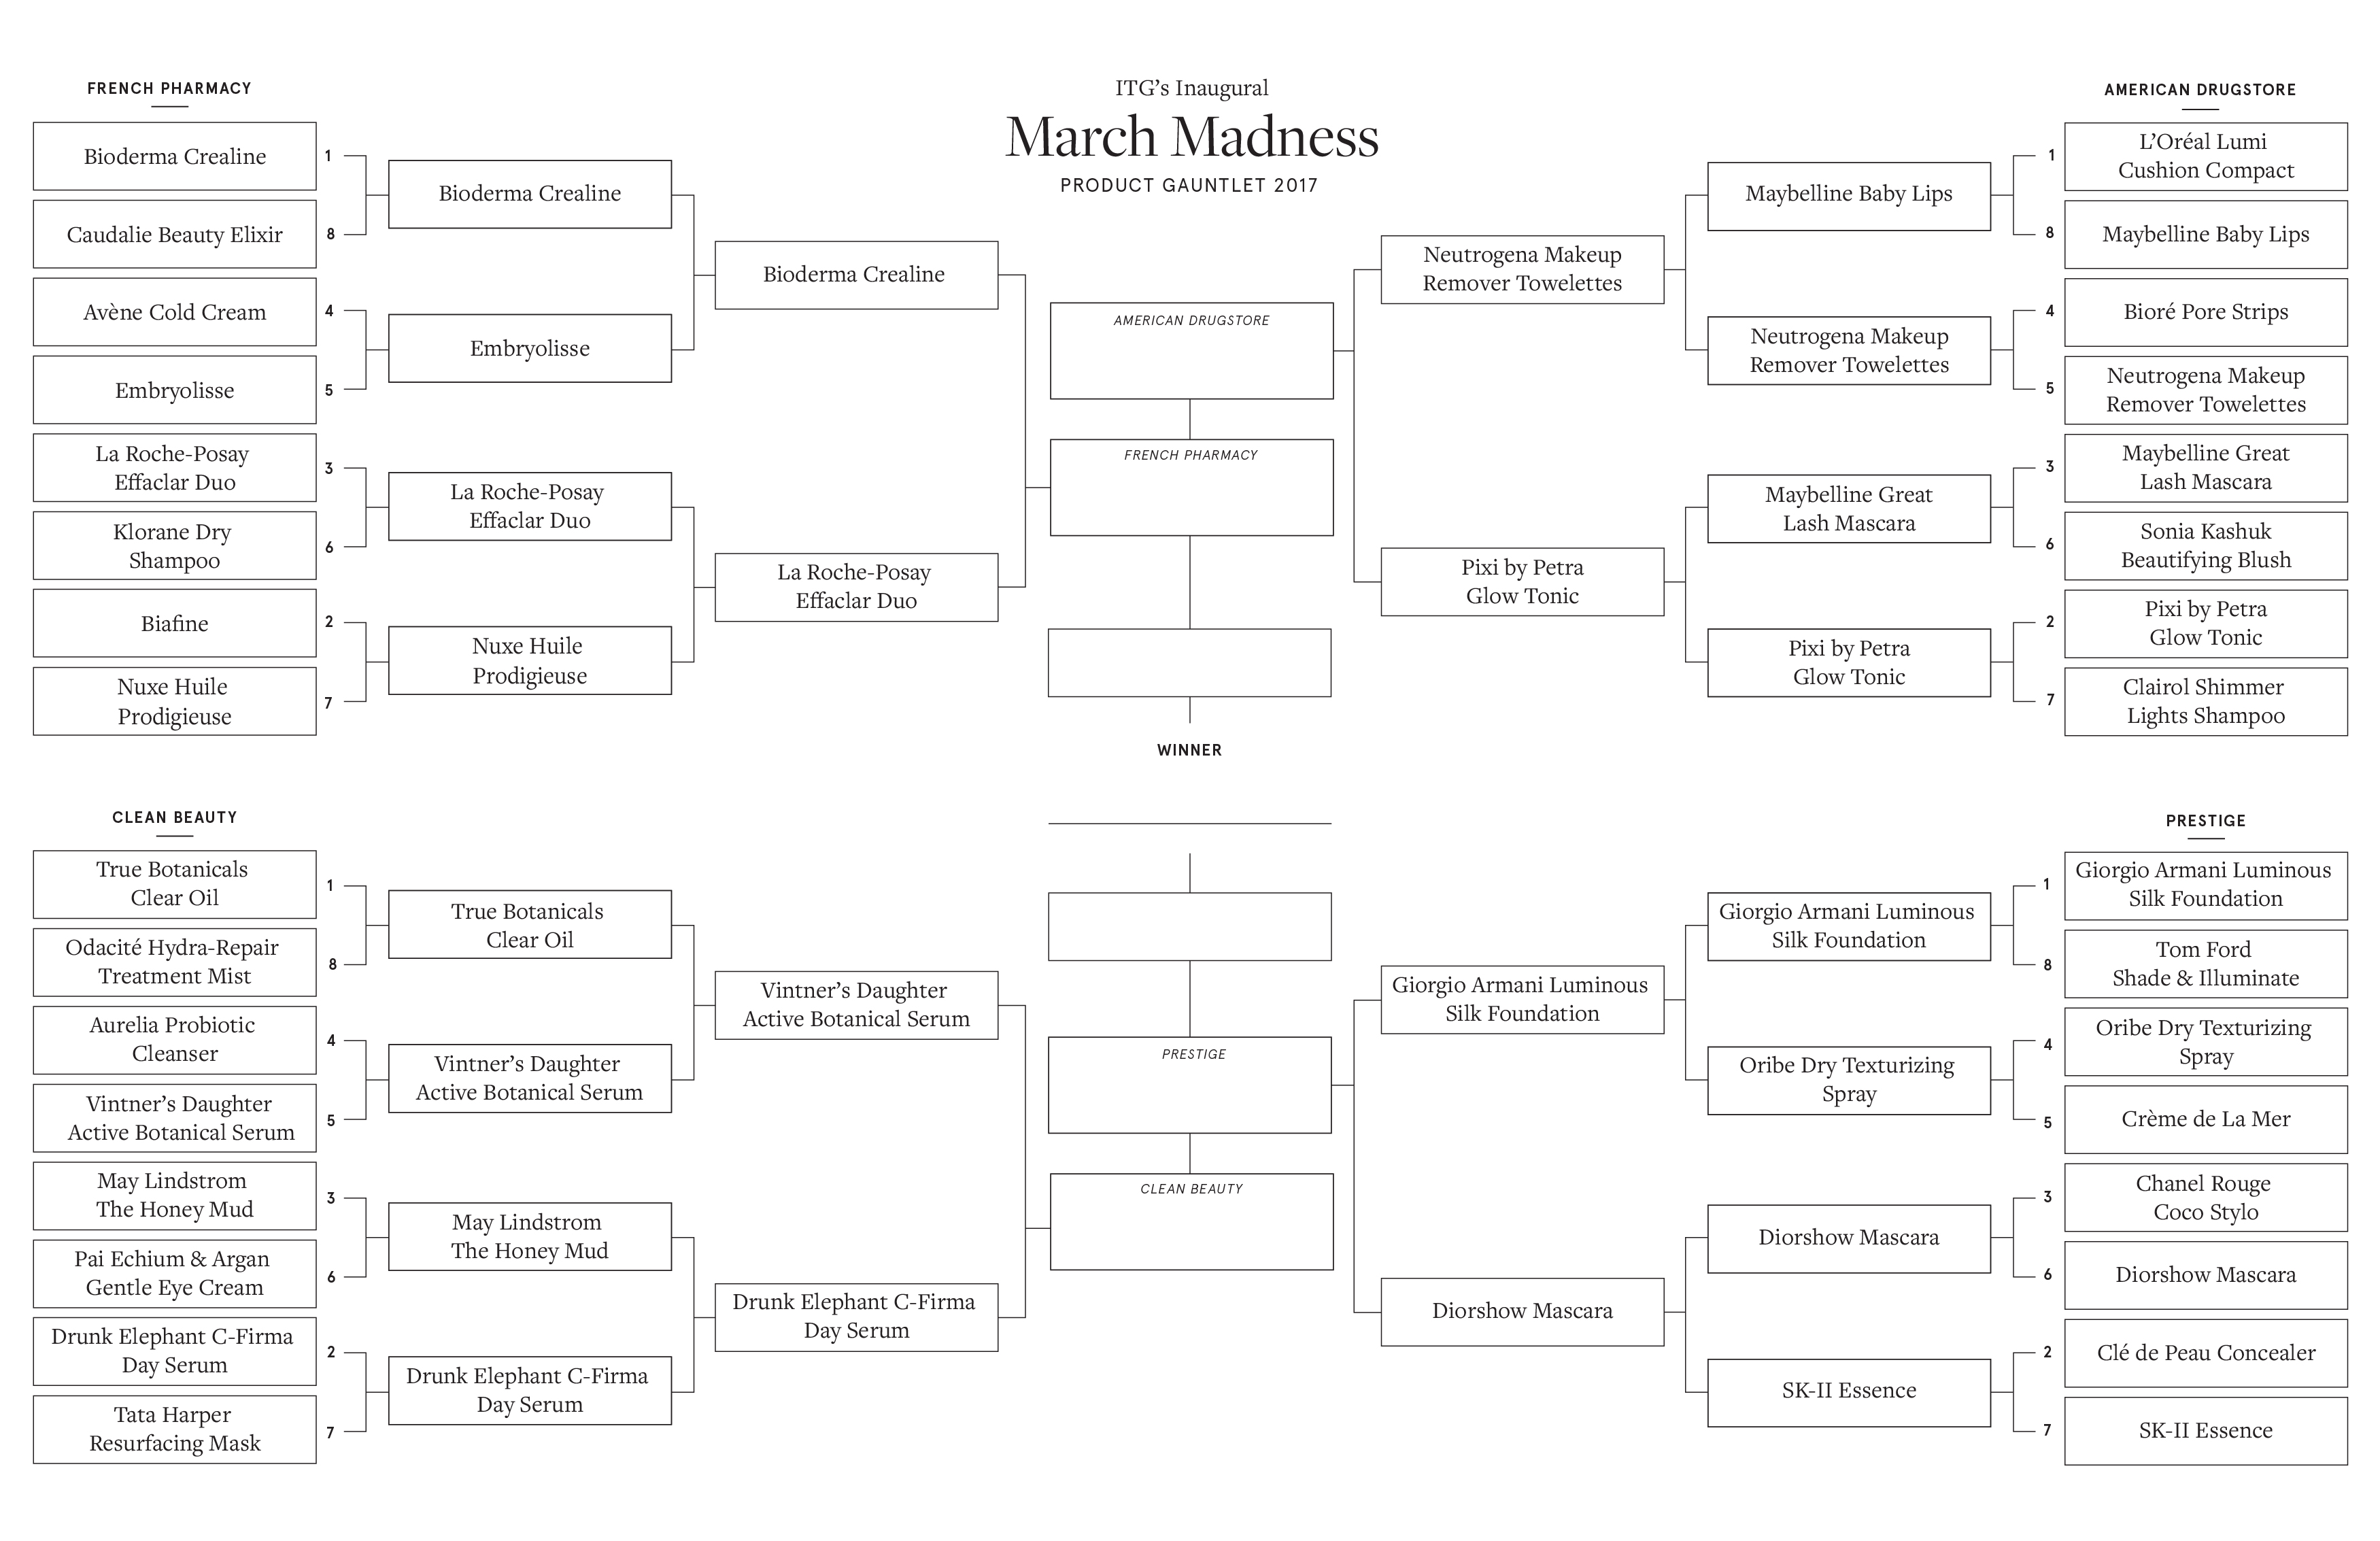 2017 MarchMadnessBracket-ITG Hi-Res Round3